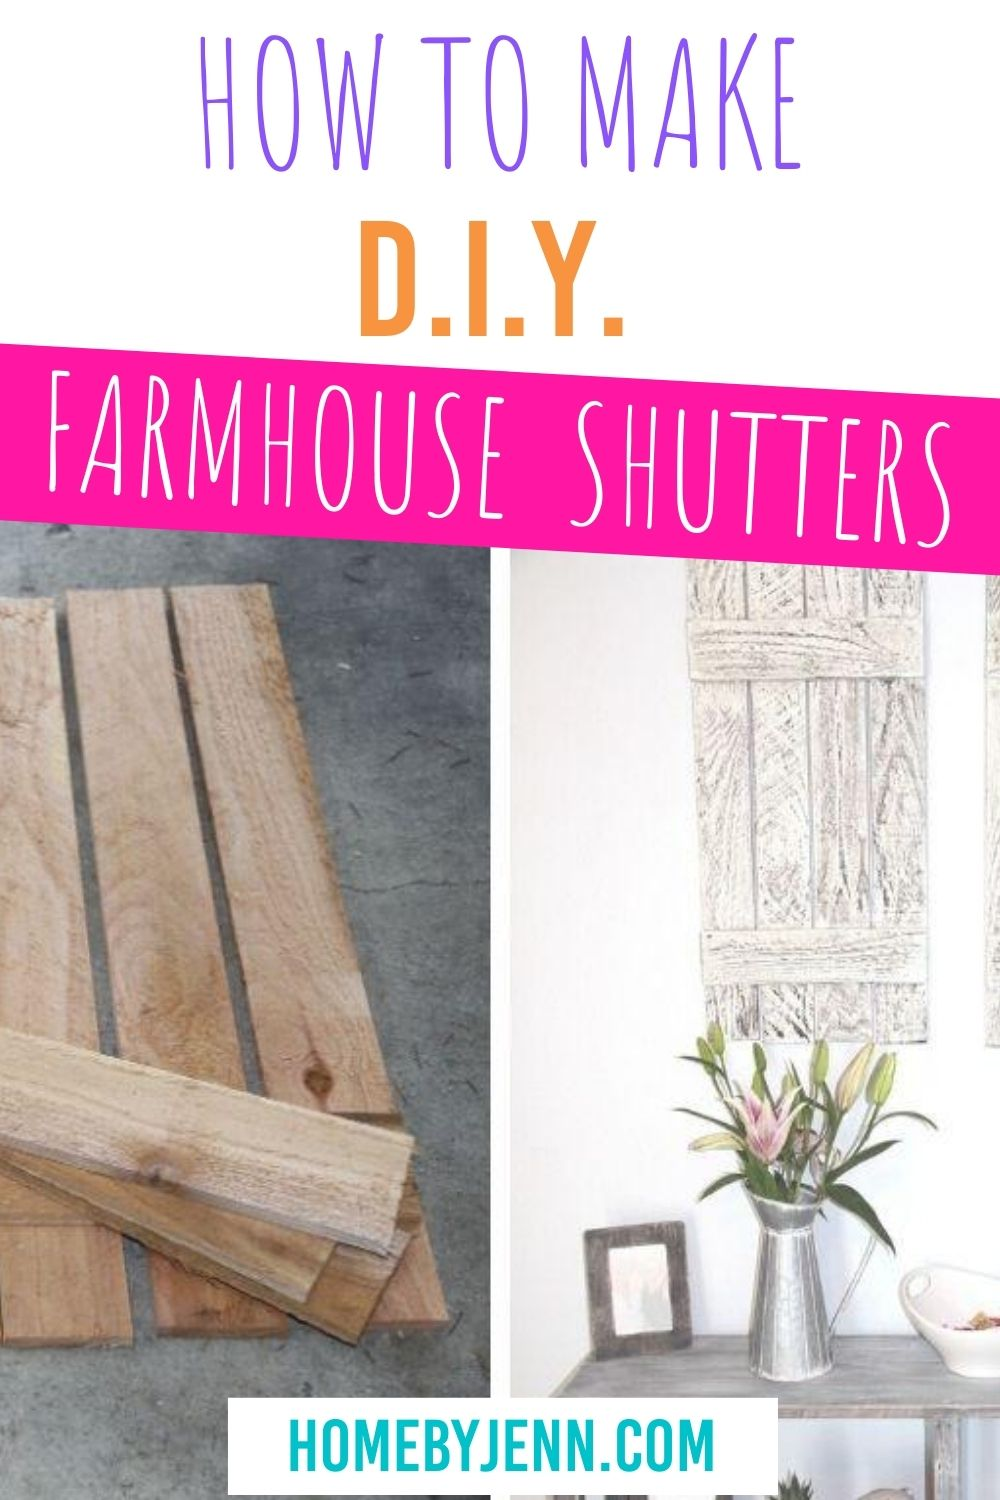 Learn how to make these farmhouse shutters. This is a simple DIY woodworking project that anyone can do. Watch the full step-by-step tutorial from the raw wood to destressing the paint giving a warn rustic farmhouse look. via @homebyjenn